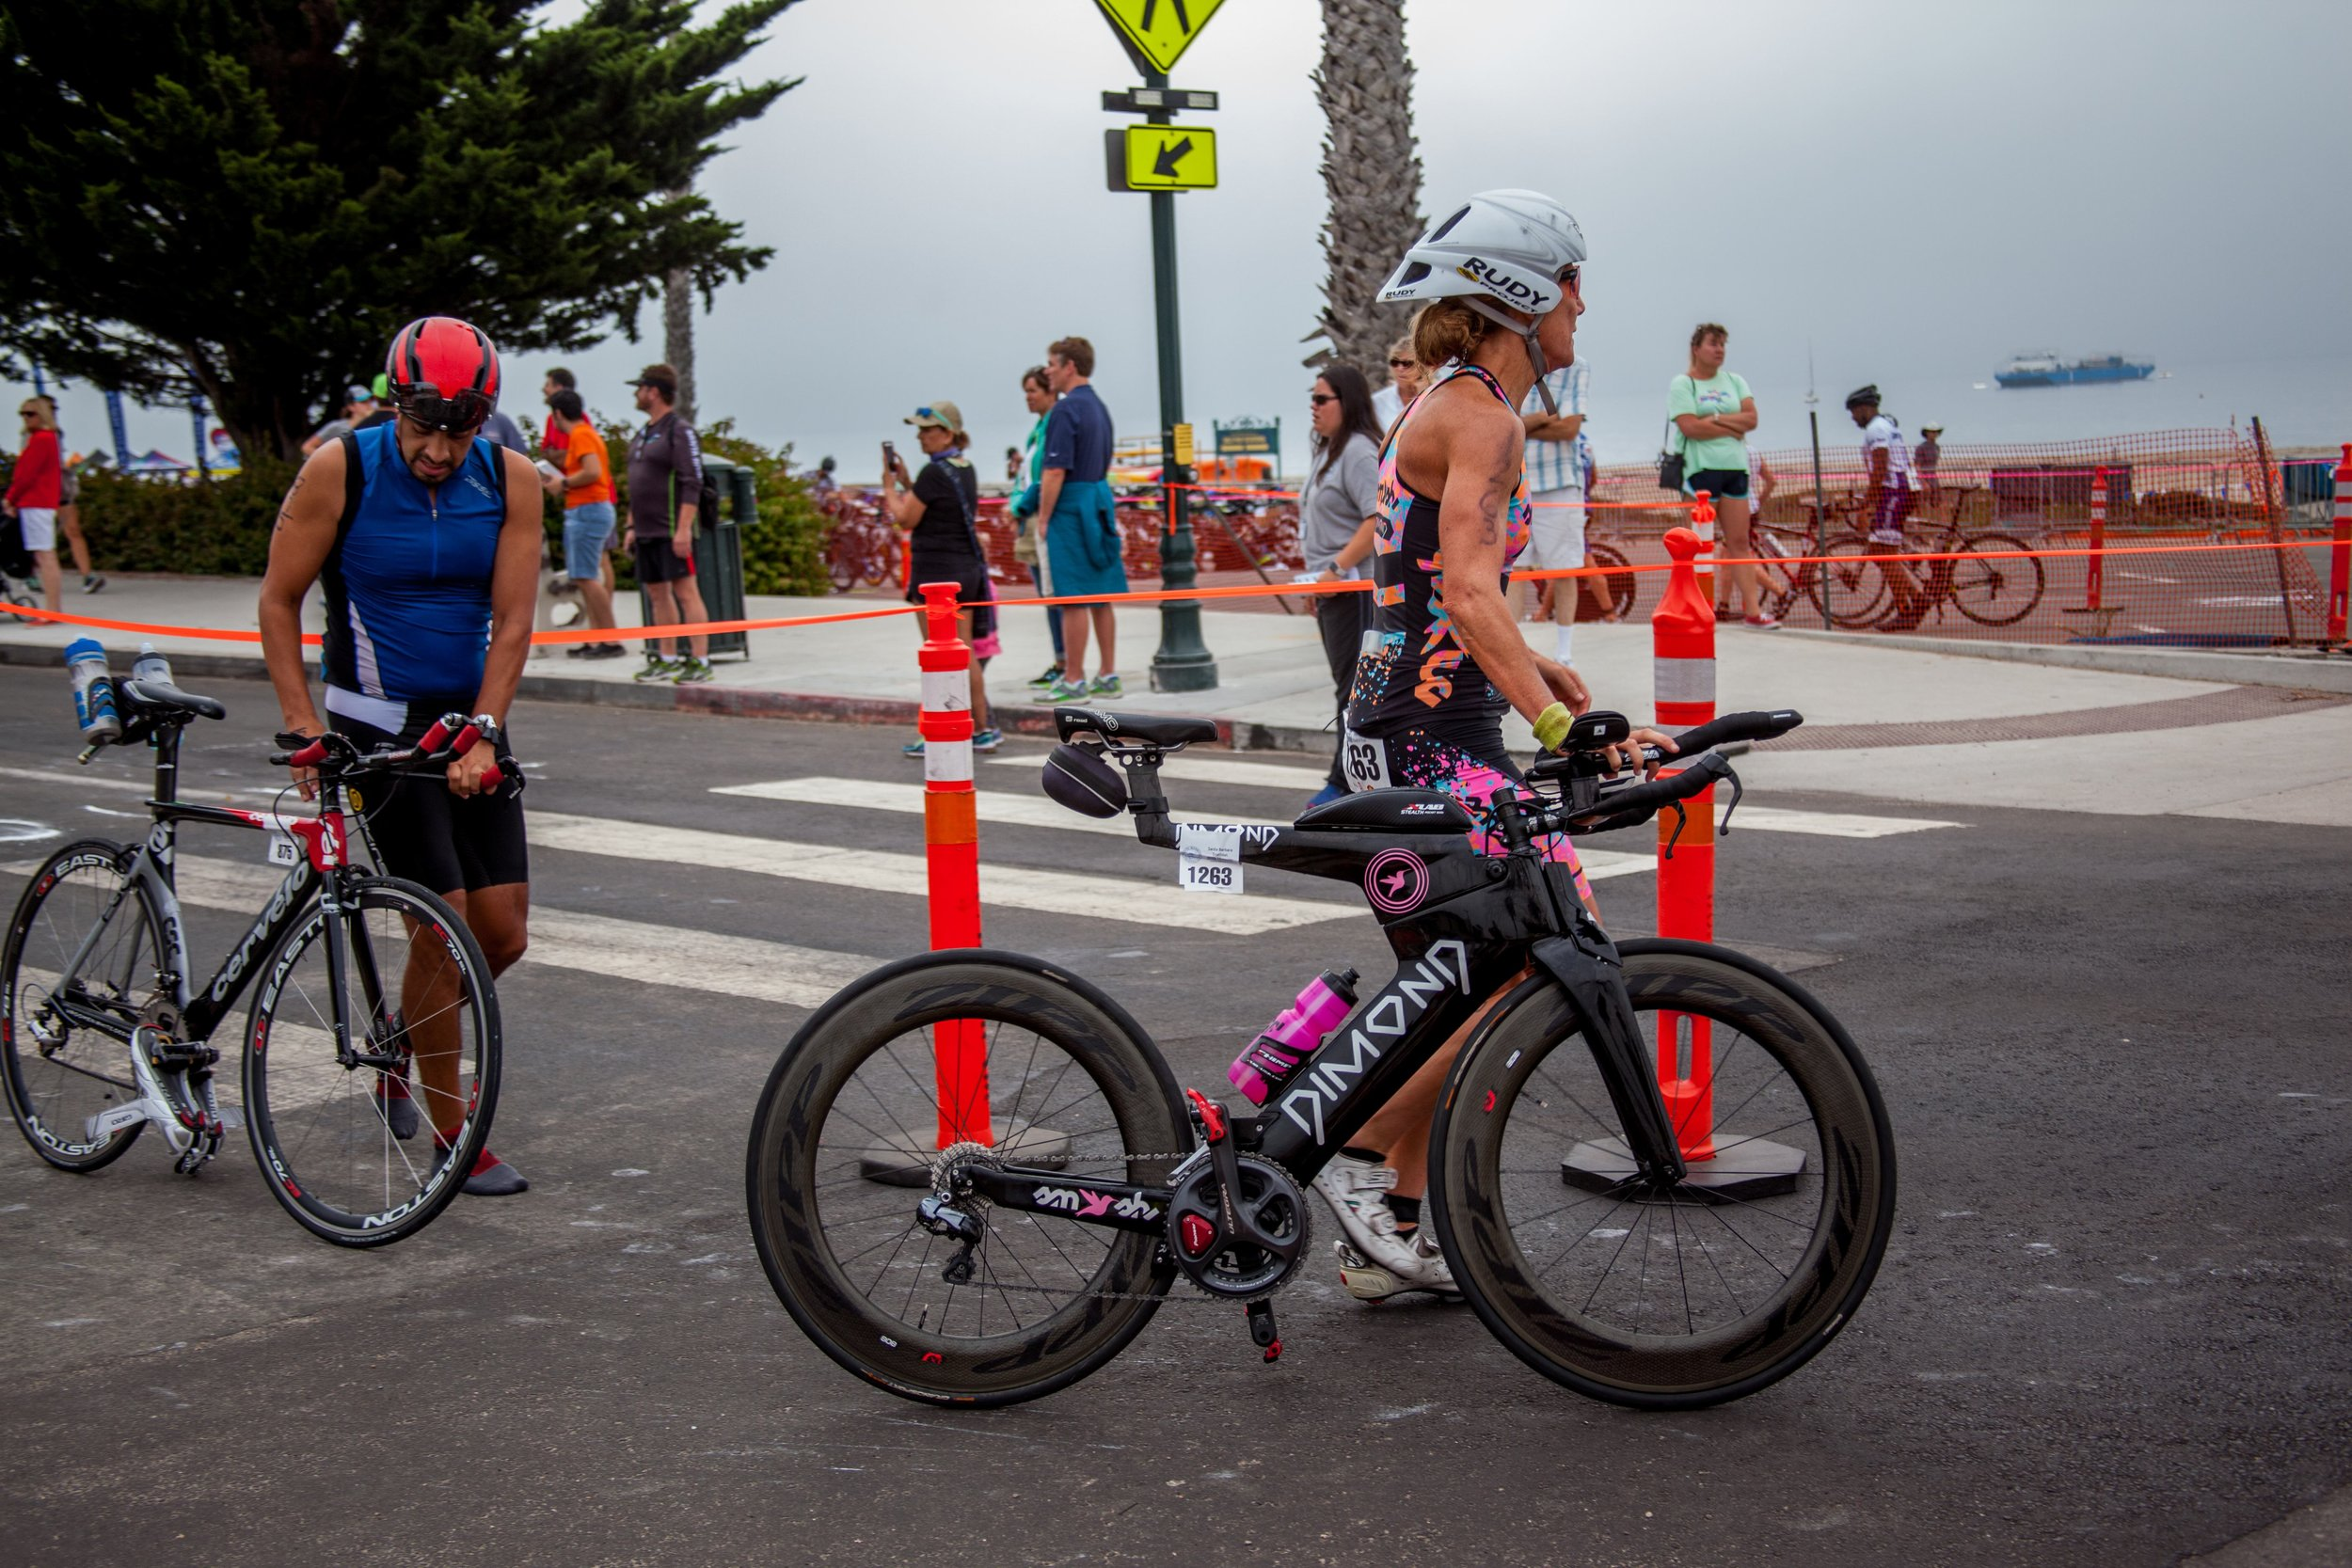 Simone in all her glory after carrying me to a fast bike split at the Santa Barbara Triathlon, 2017.